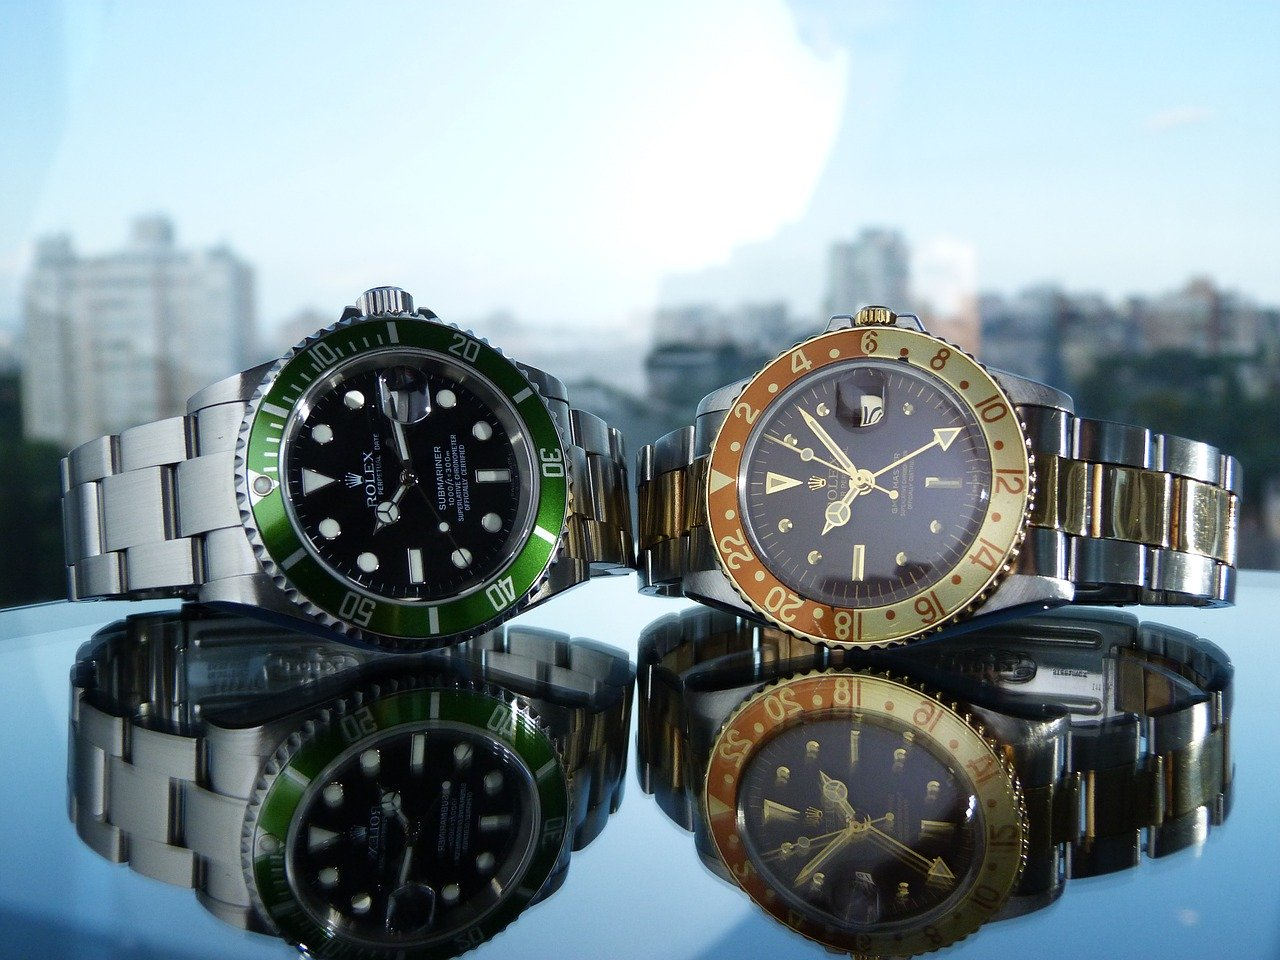 Luxury watch brands, Rolex